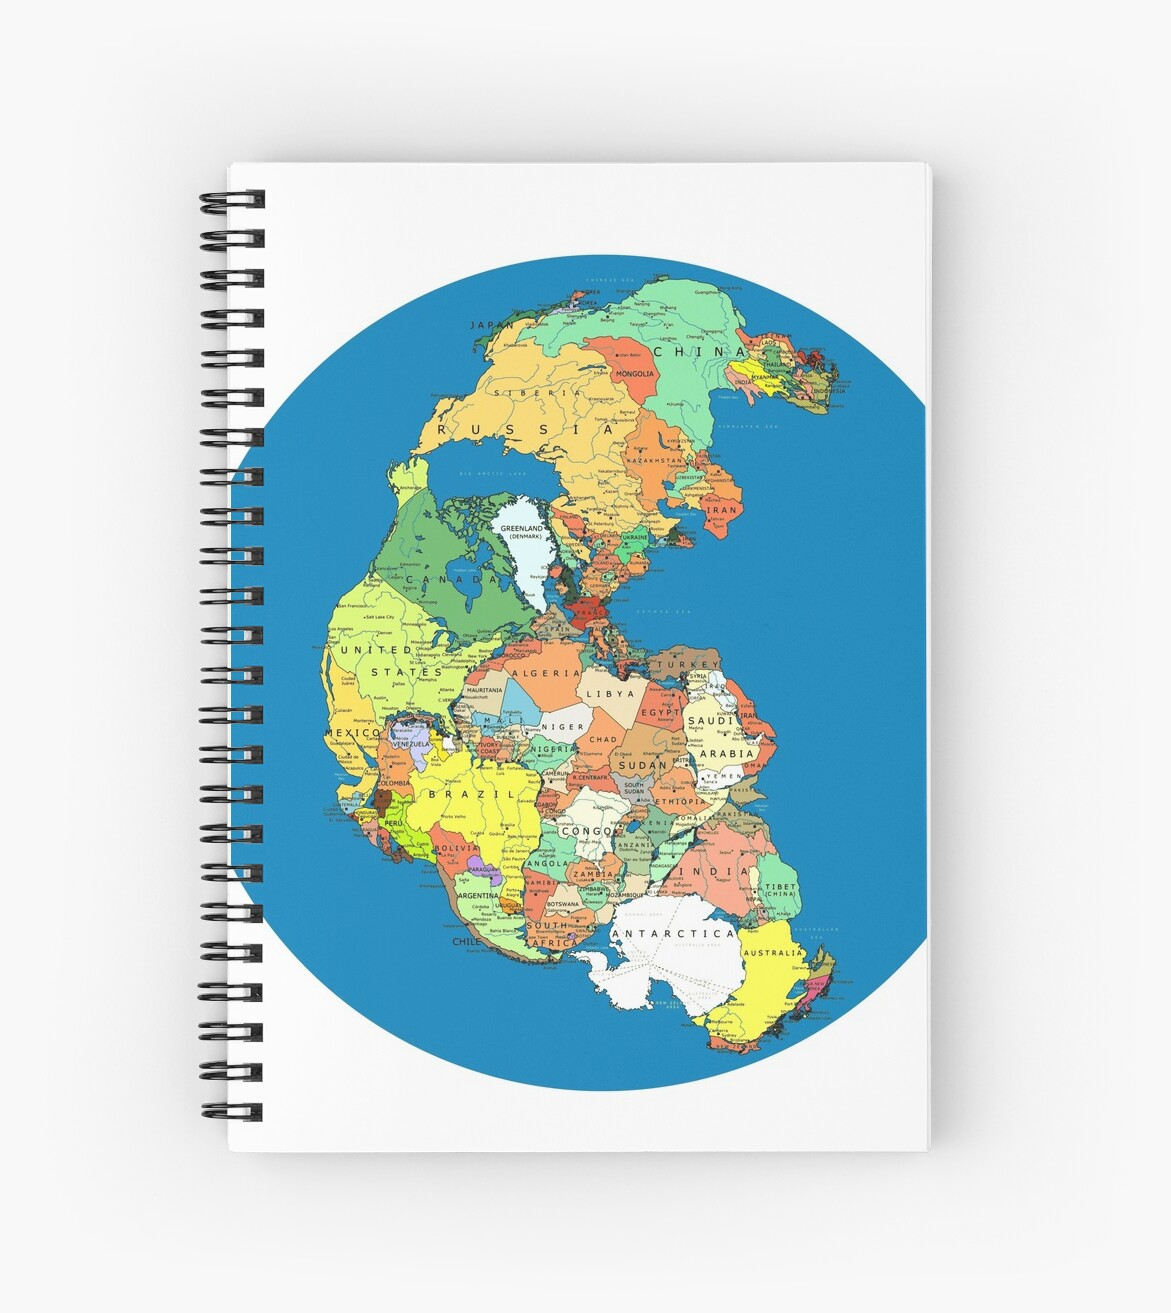 Pangea political world map spiral notebooks by branpurn redbubble pangea political world map by branpurn gumiabroncs